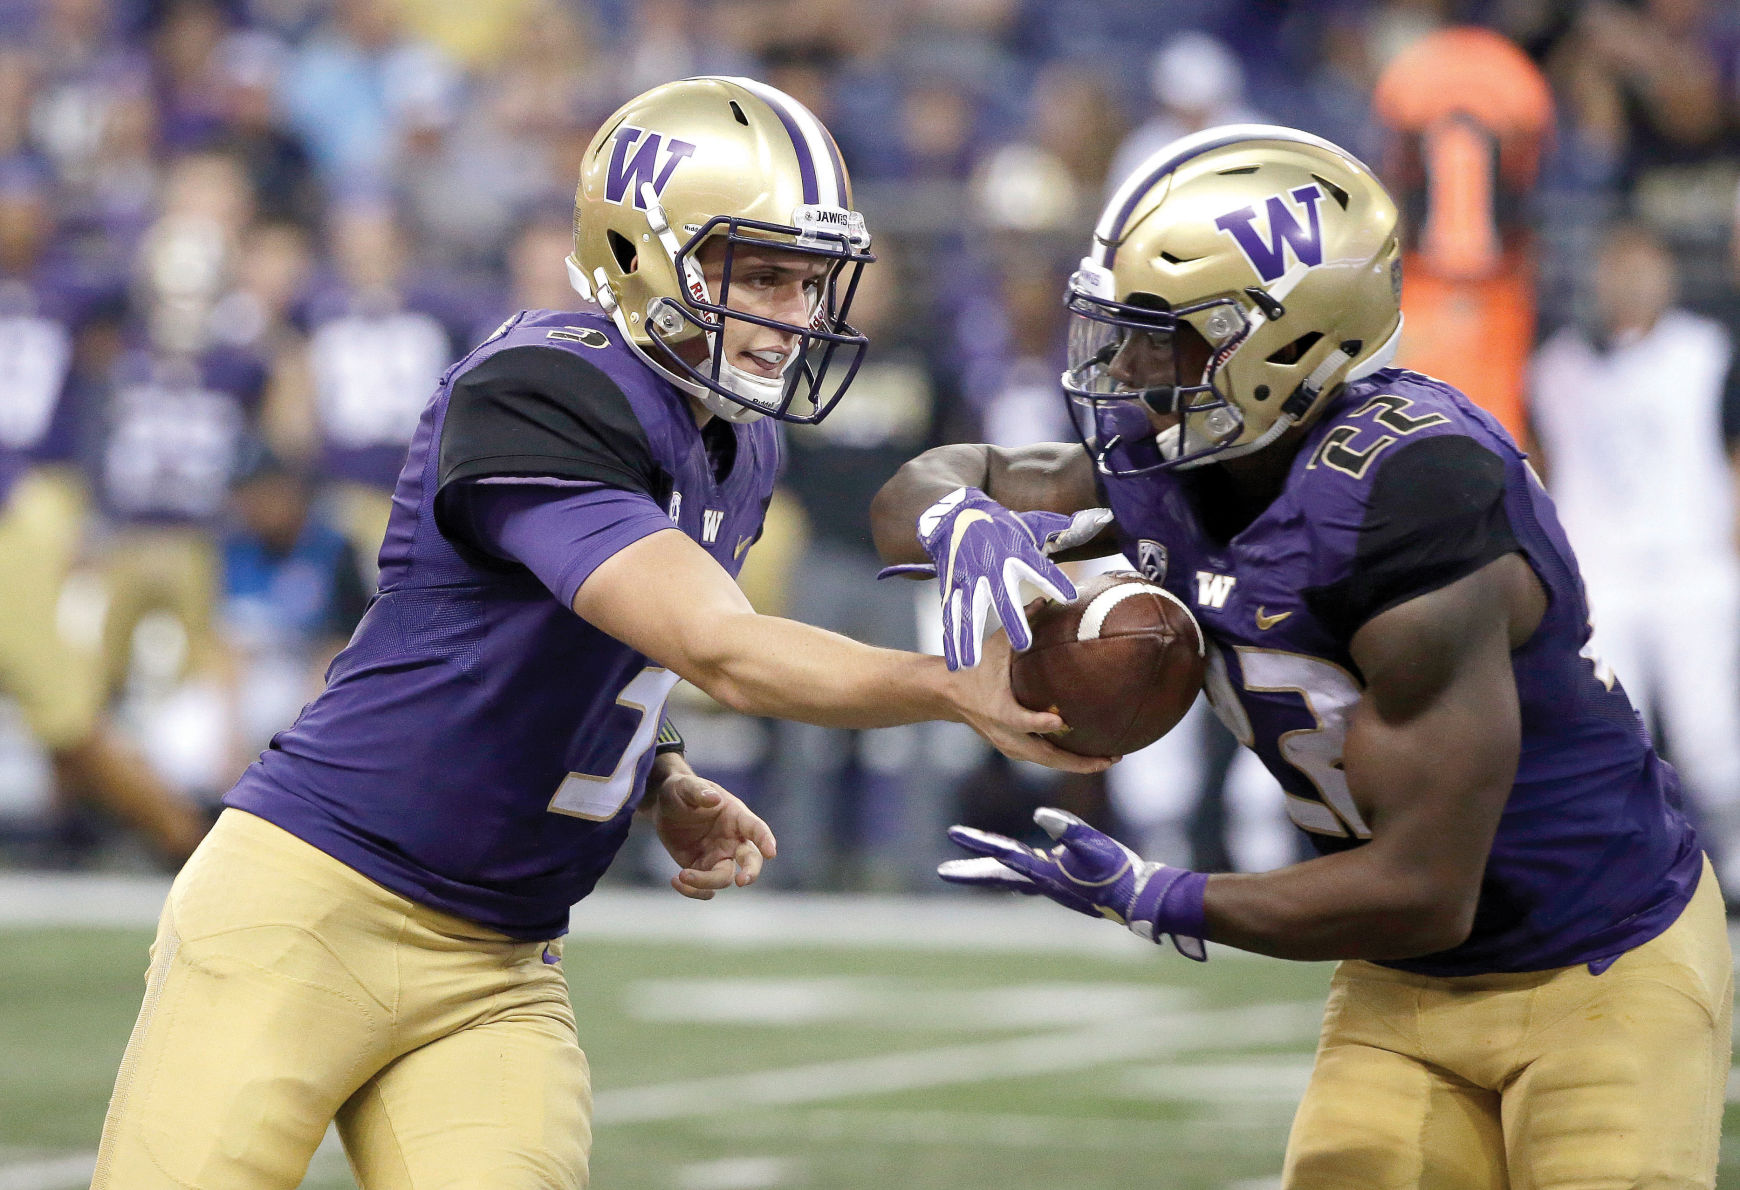 Colorado punter will kick it 'high and far' to avoid Dante Pettis